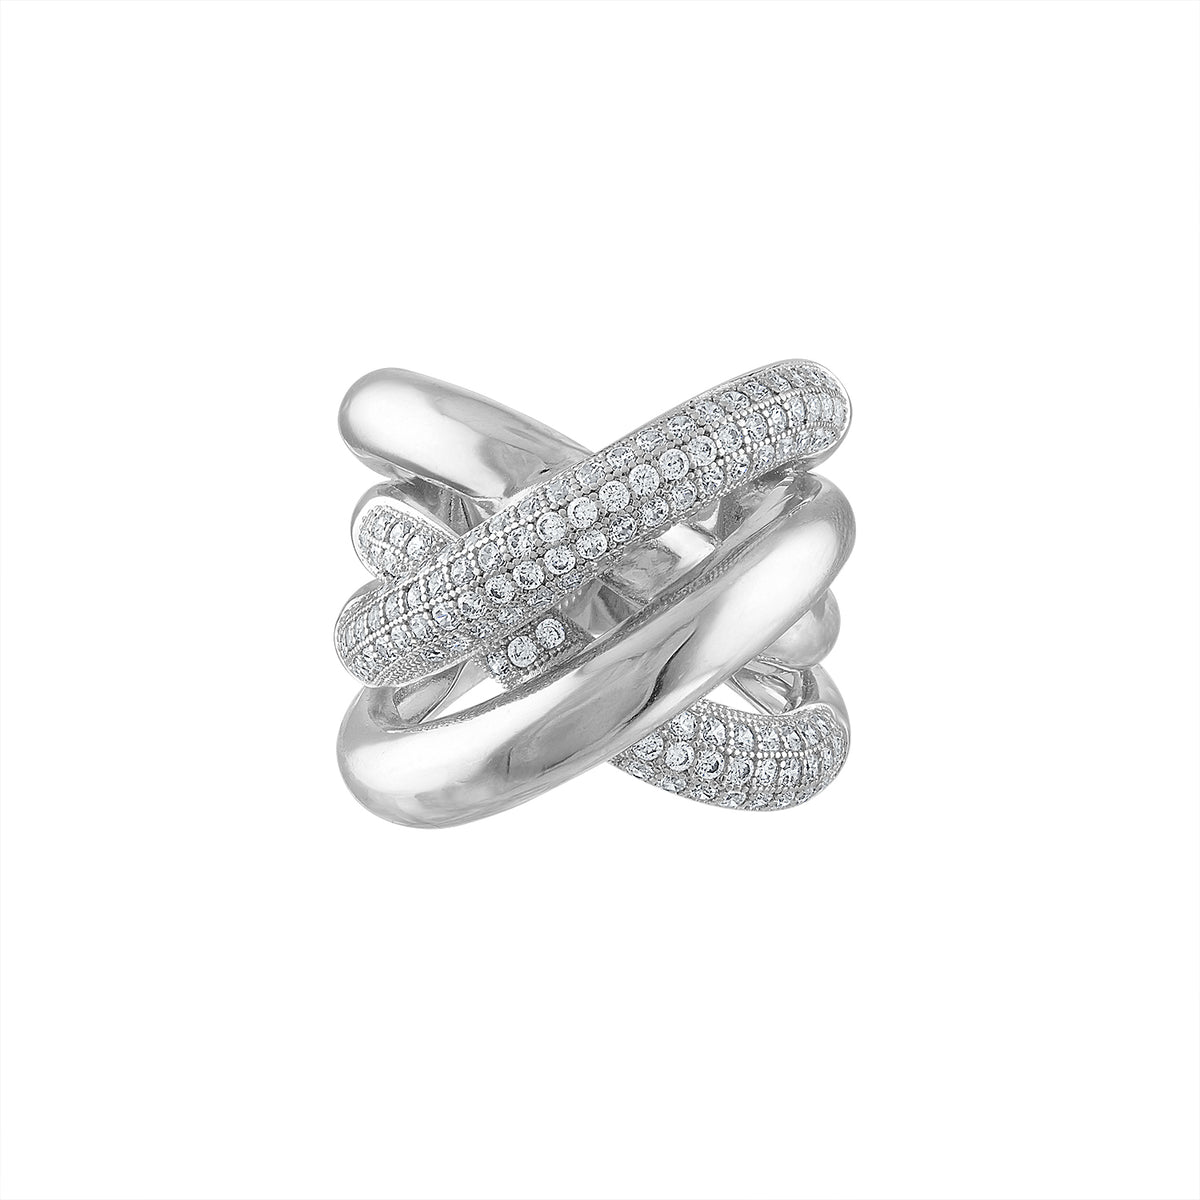 Chunky Criss Cross Pave Ring